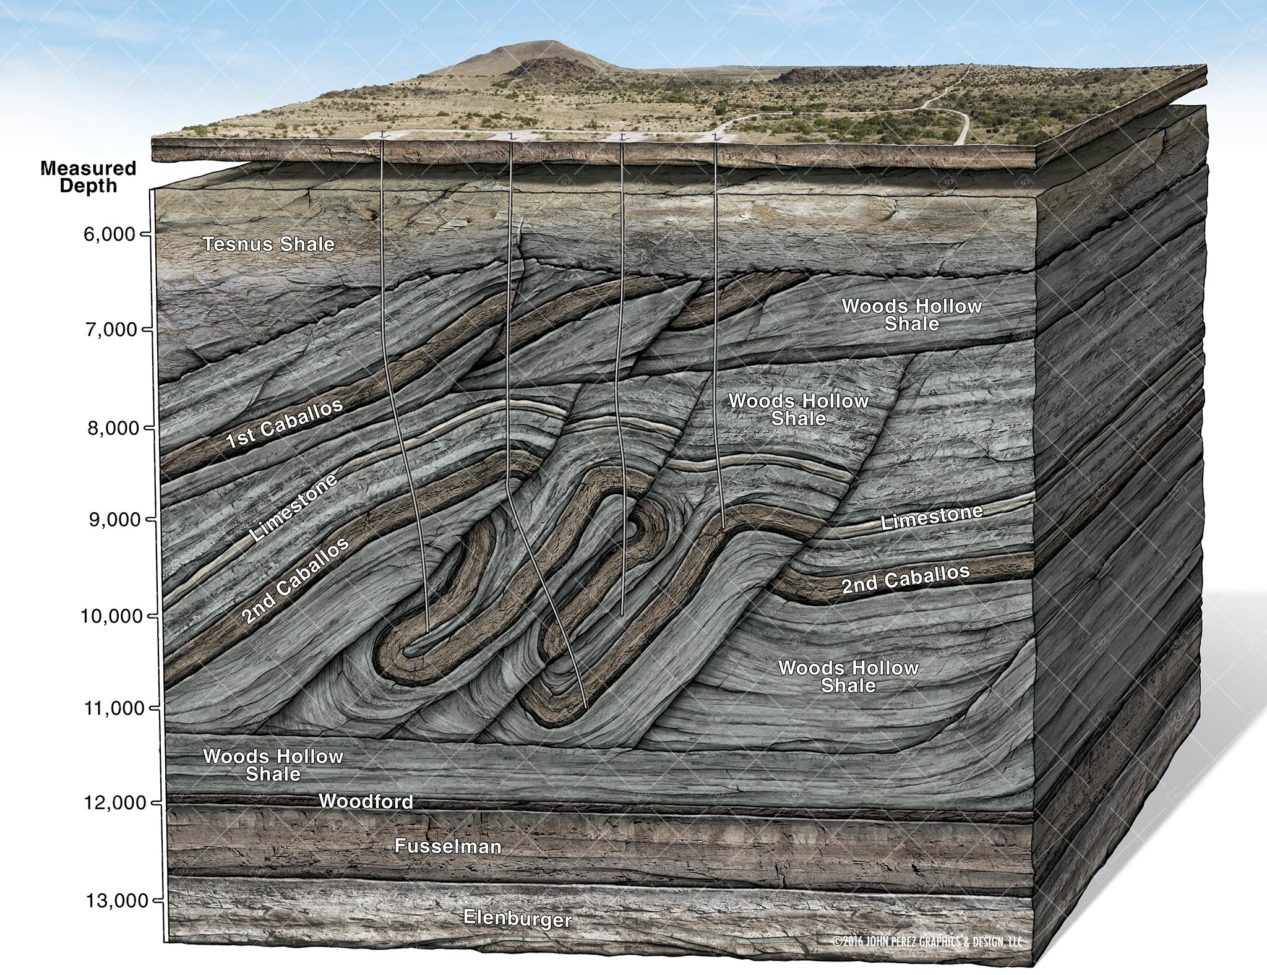 john perez graphics, drilling geology, Metamorphic Folding Faulting Schematic, oil and gas graphics, oil and gas schematics